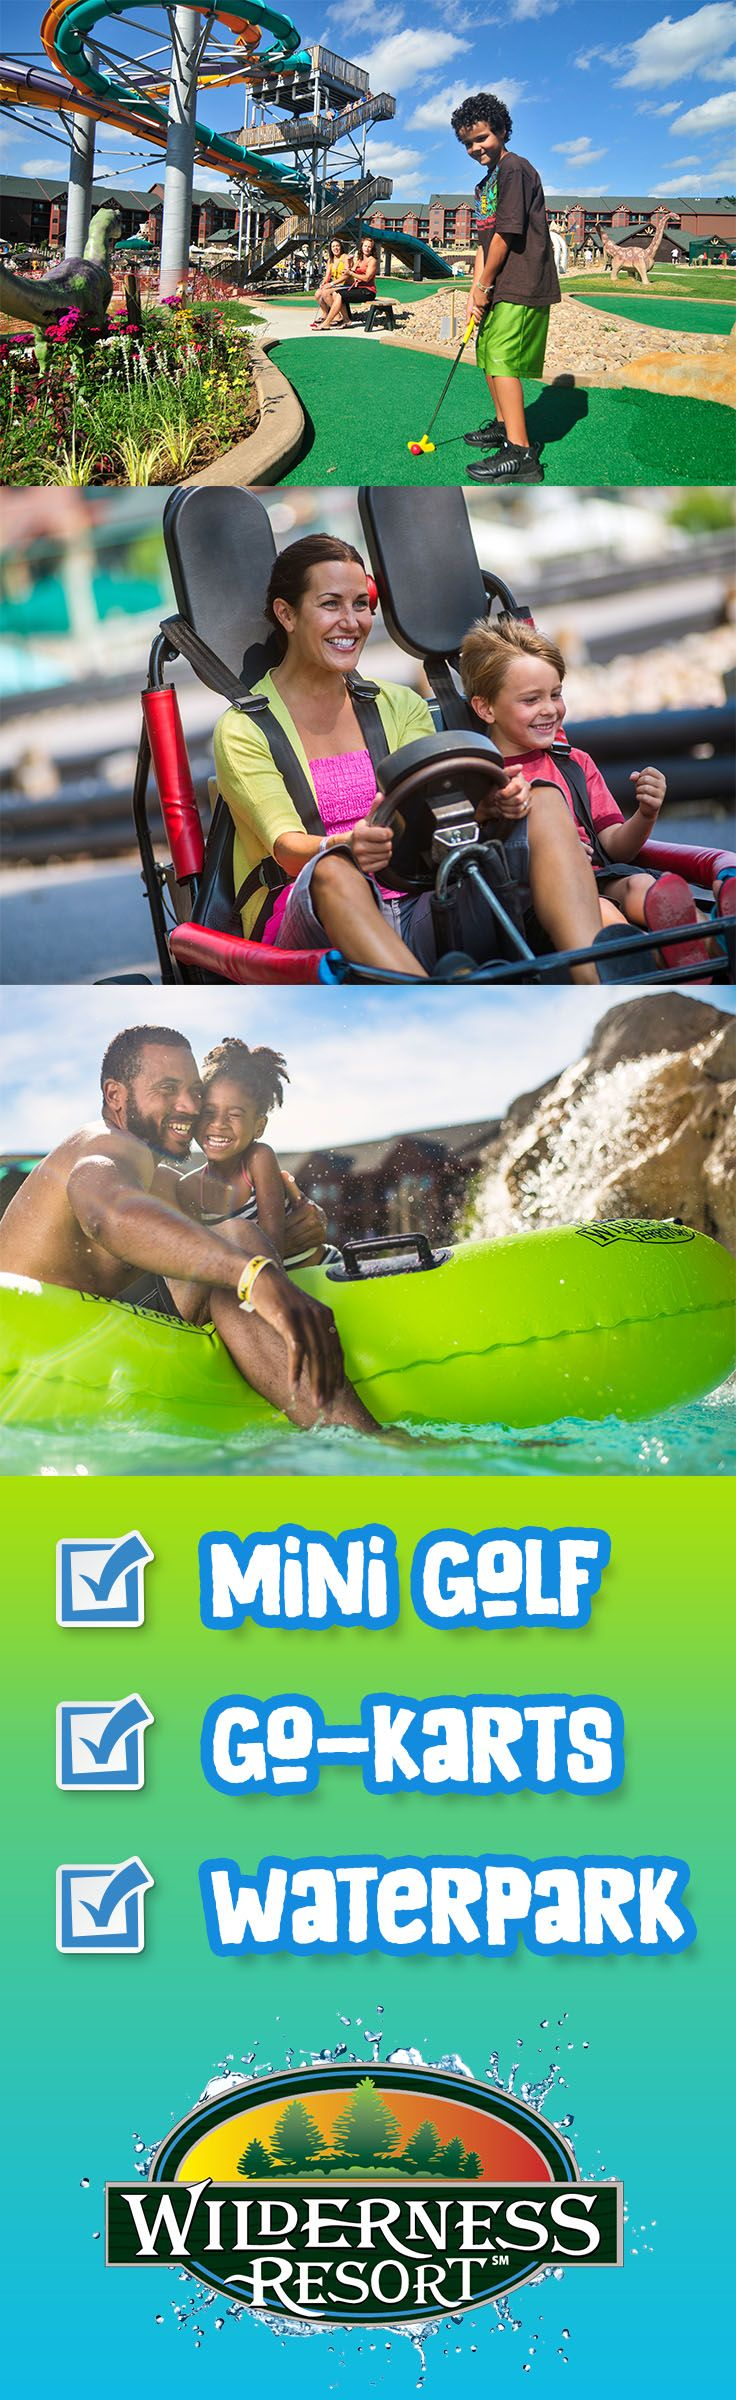 When you stay at Glacier Canyon Lodge, mini golf, go-karts, and the Lost World waterpark are right outside your door. Plus you have access to all of the amenities and waterparks across the resort. Wilderness Resort - America's Largest Waterpark Resort.